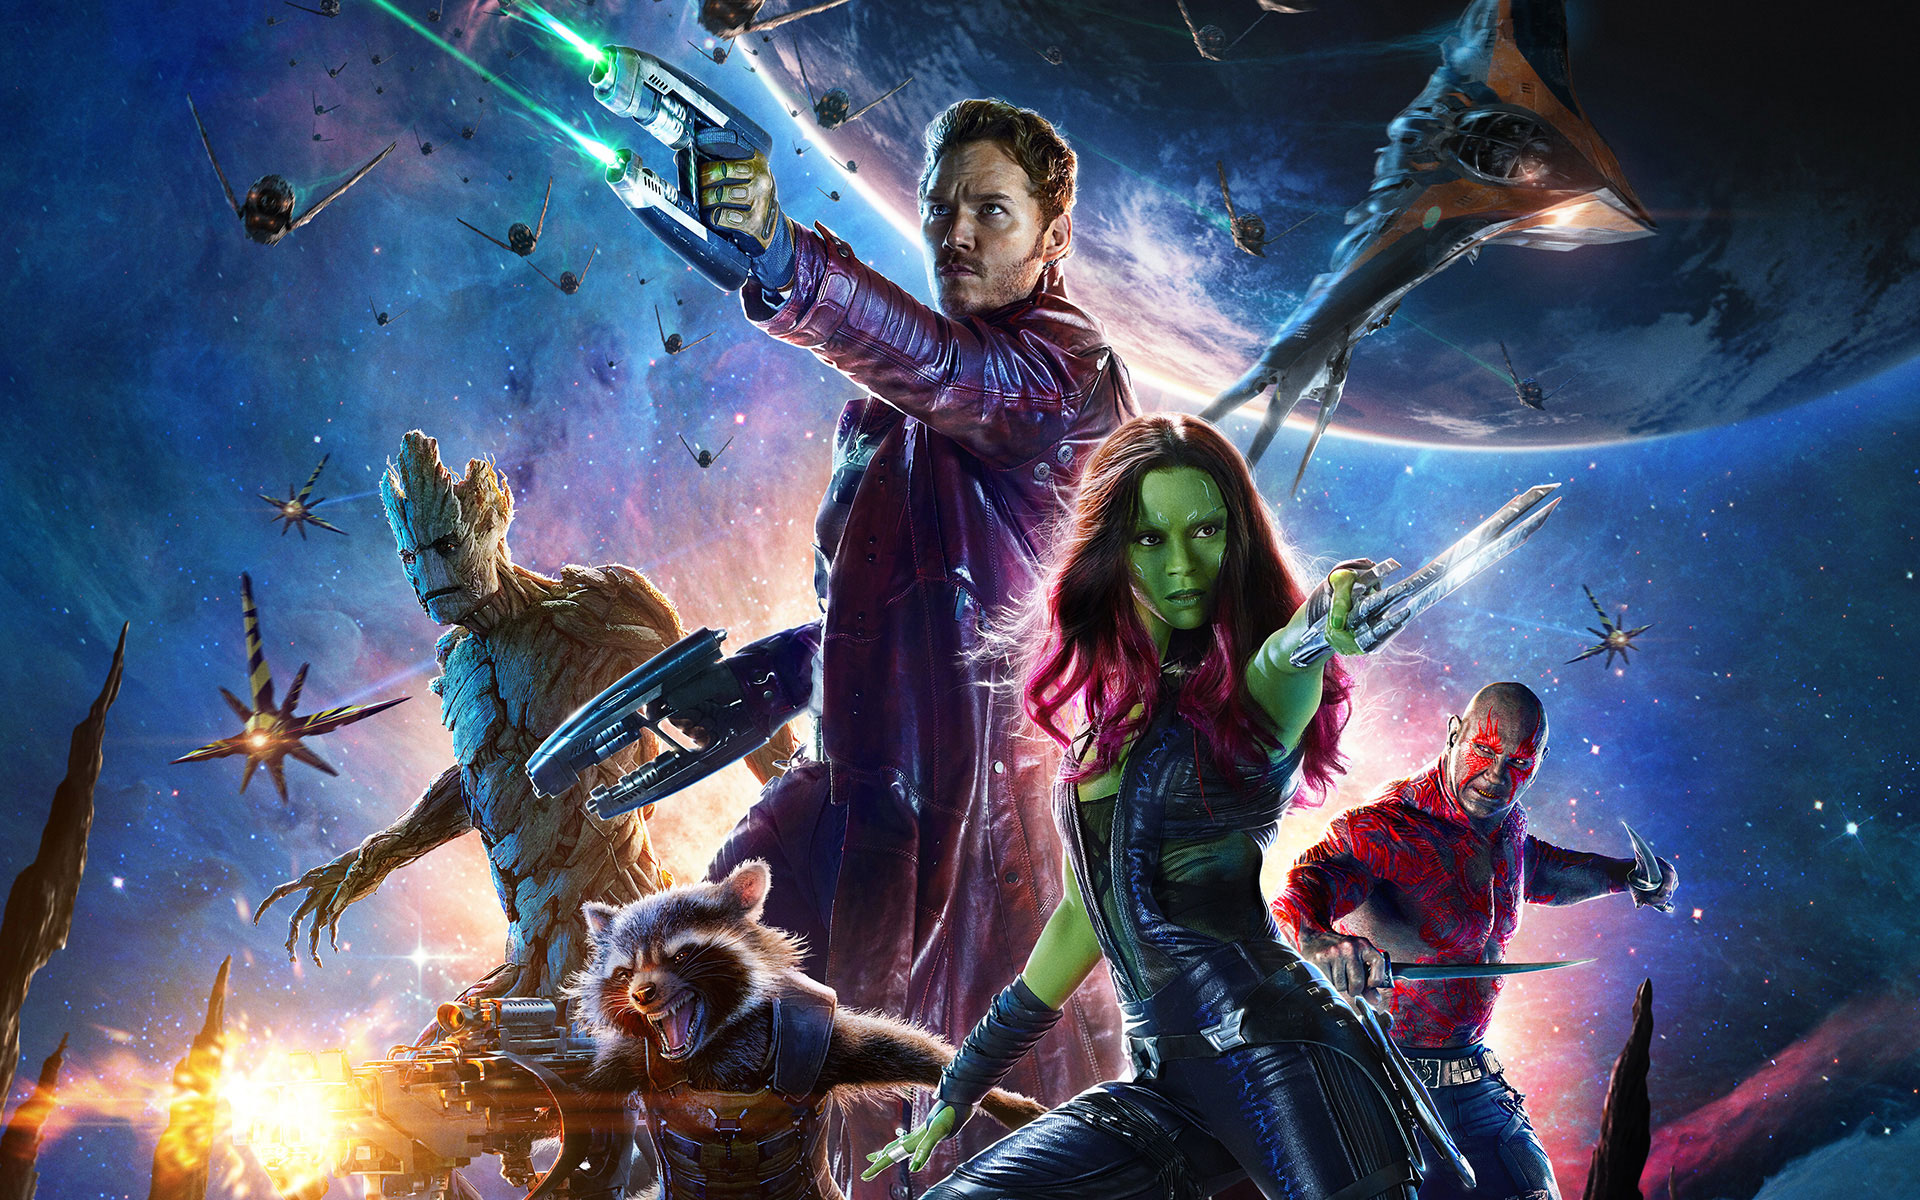 Guardians Of The Galaxy Wallpaper Hd 4